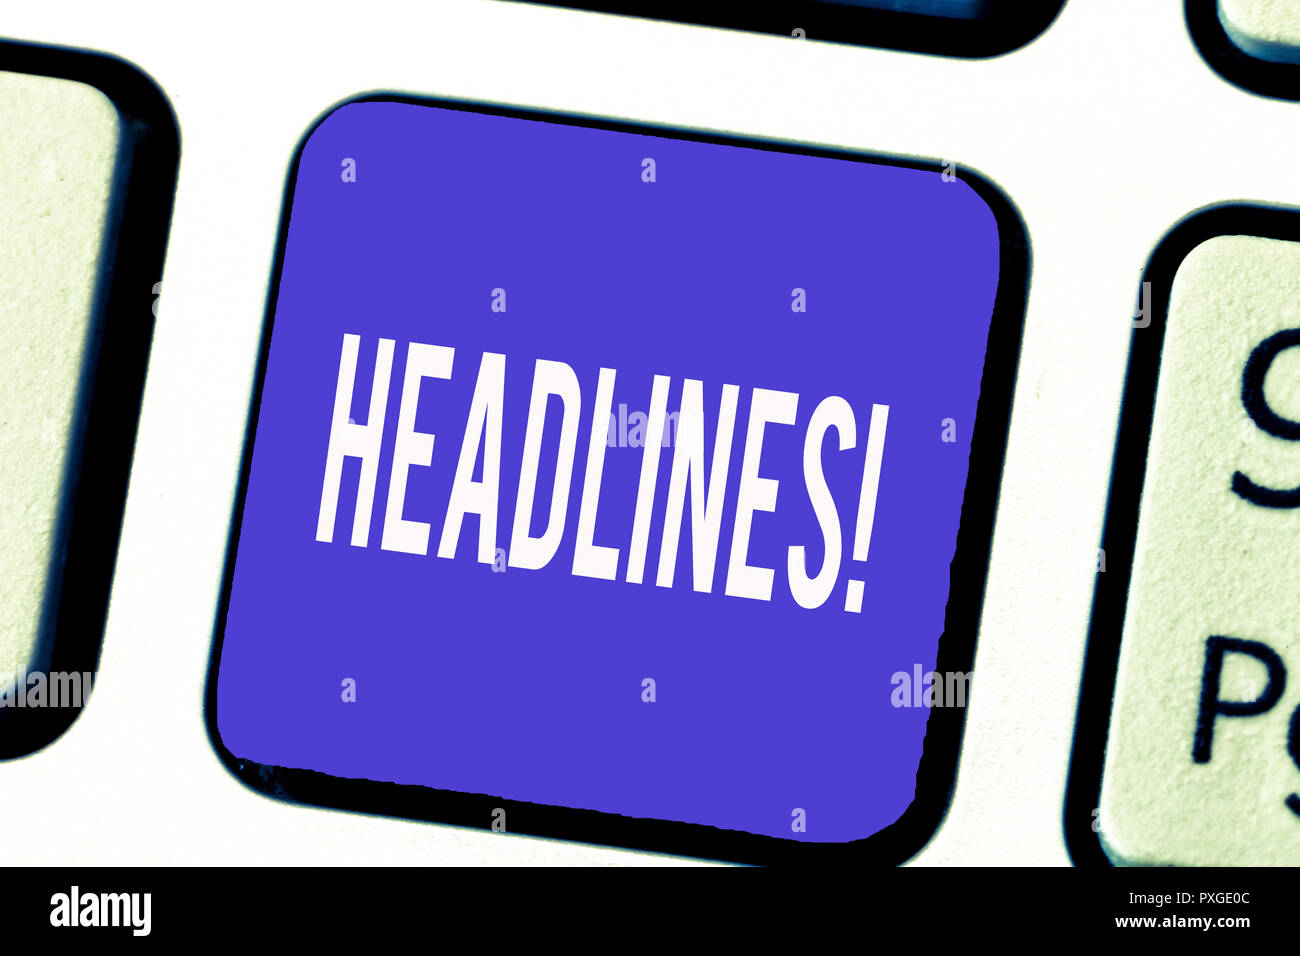 Word writing text Headlines. Business concept for Heading at the top of an article page in a newspaper or magazine. Stock Photo